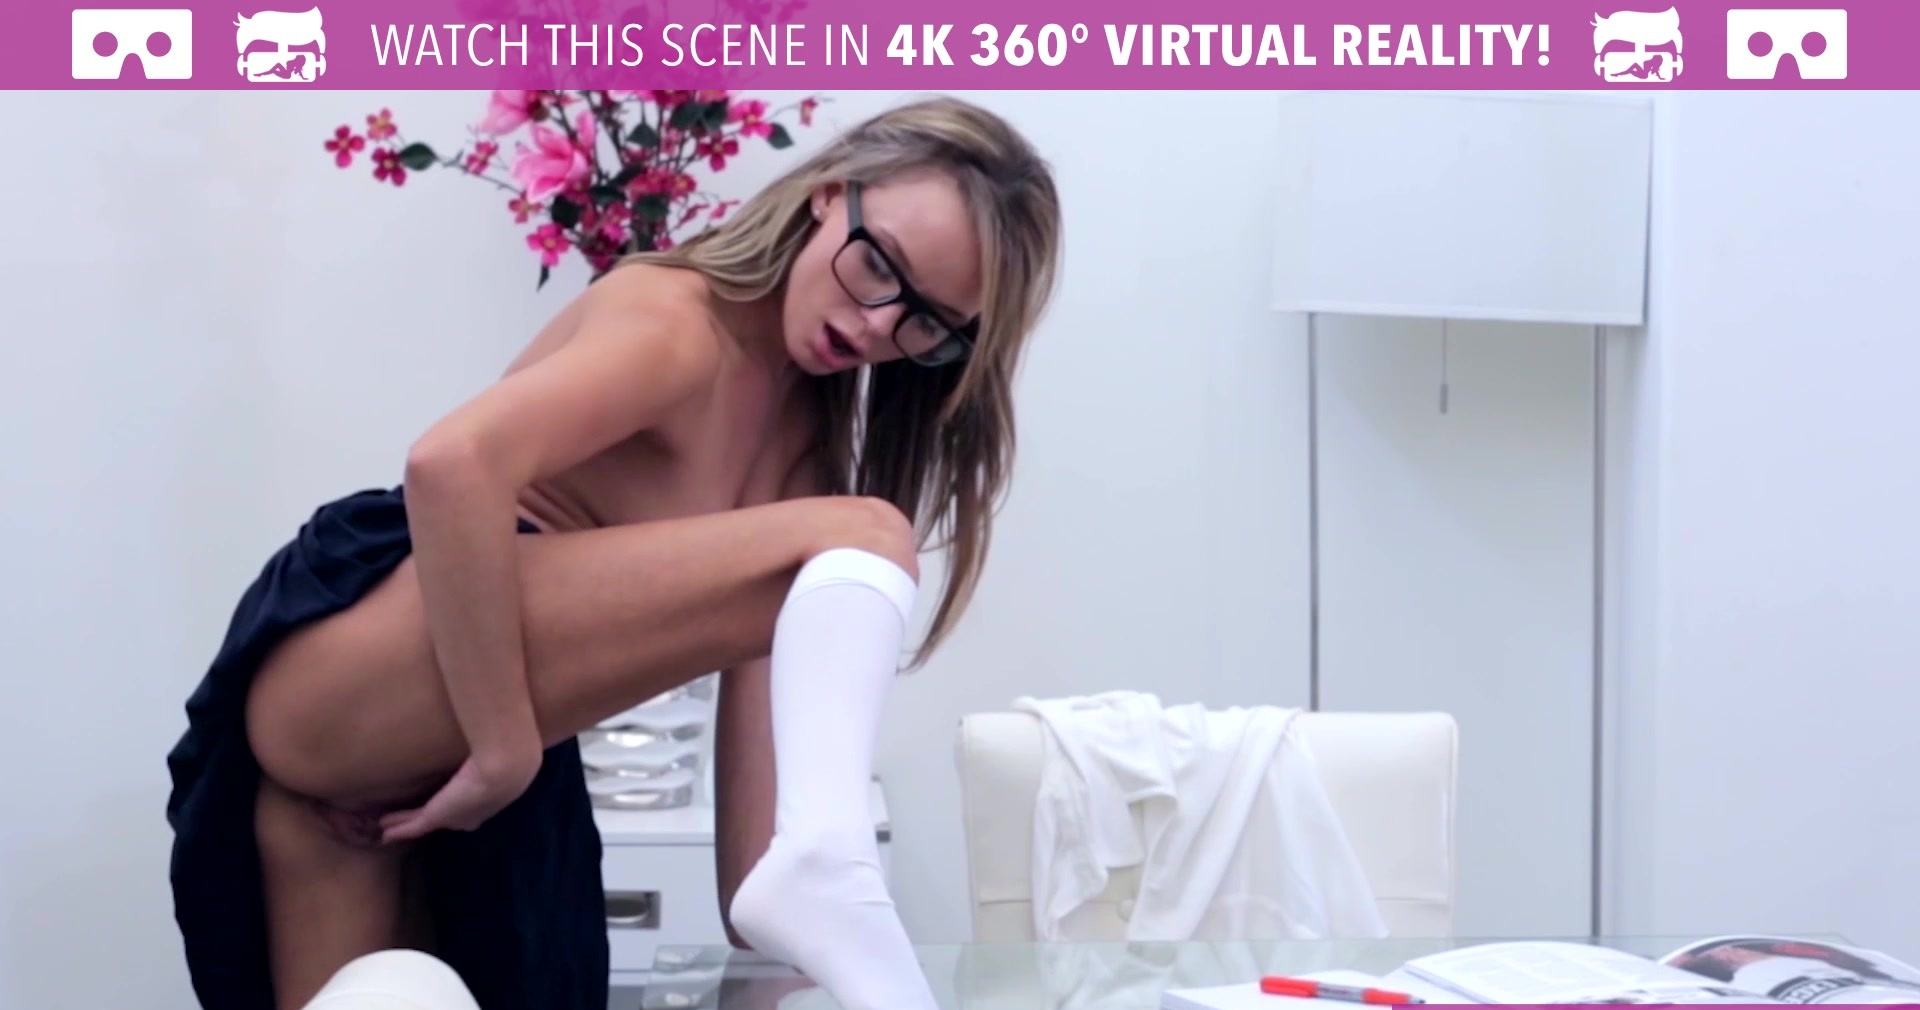 VR Bangers - HORNY Pristine Edge touching her PUSSY while studying